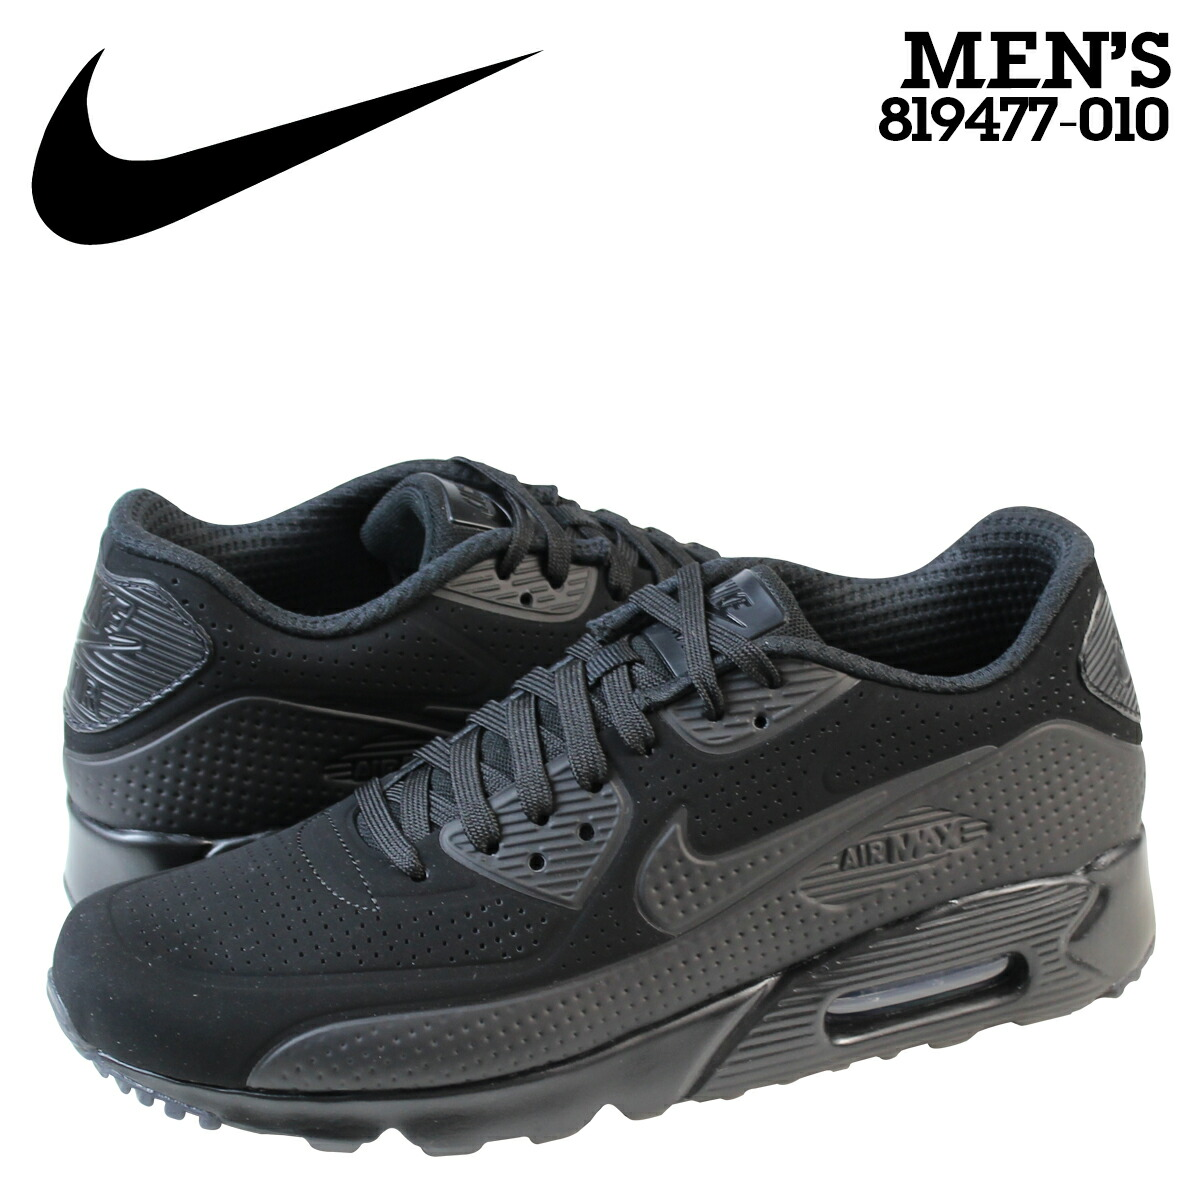 Nike Air Max 90 Ultra Moire Sneakers